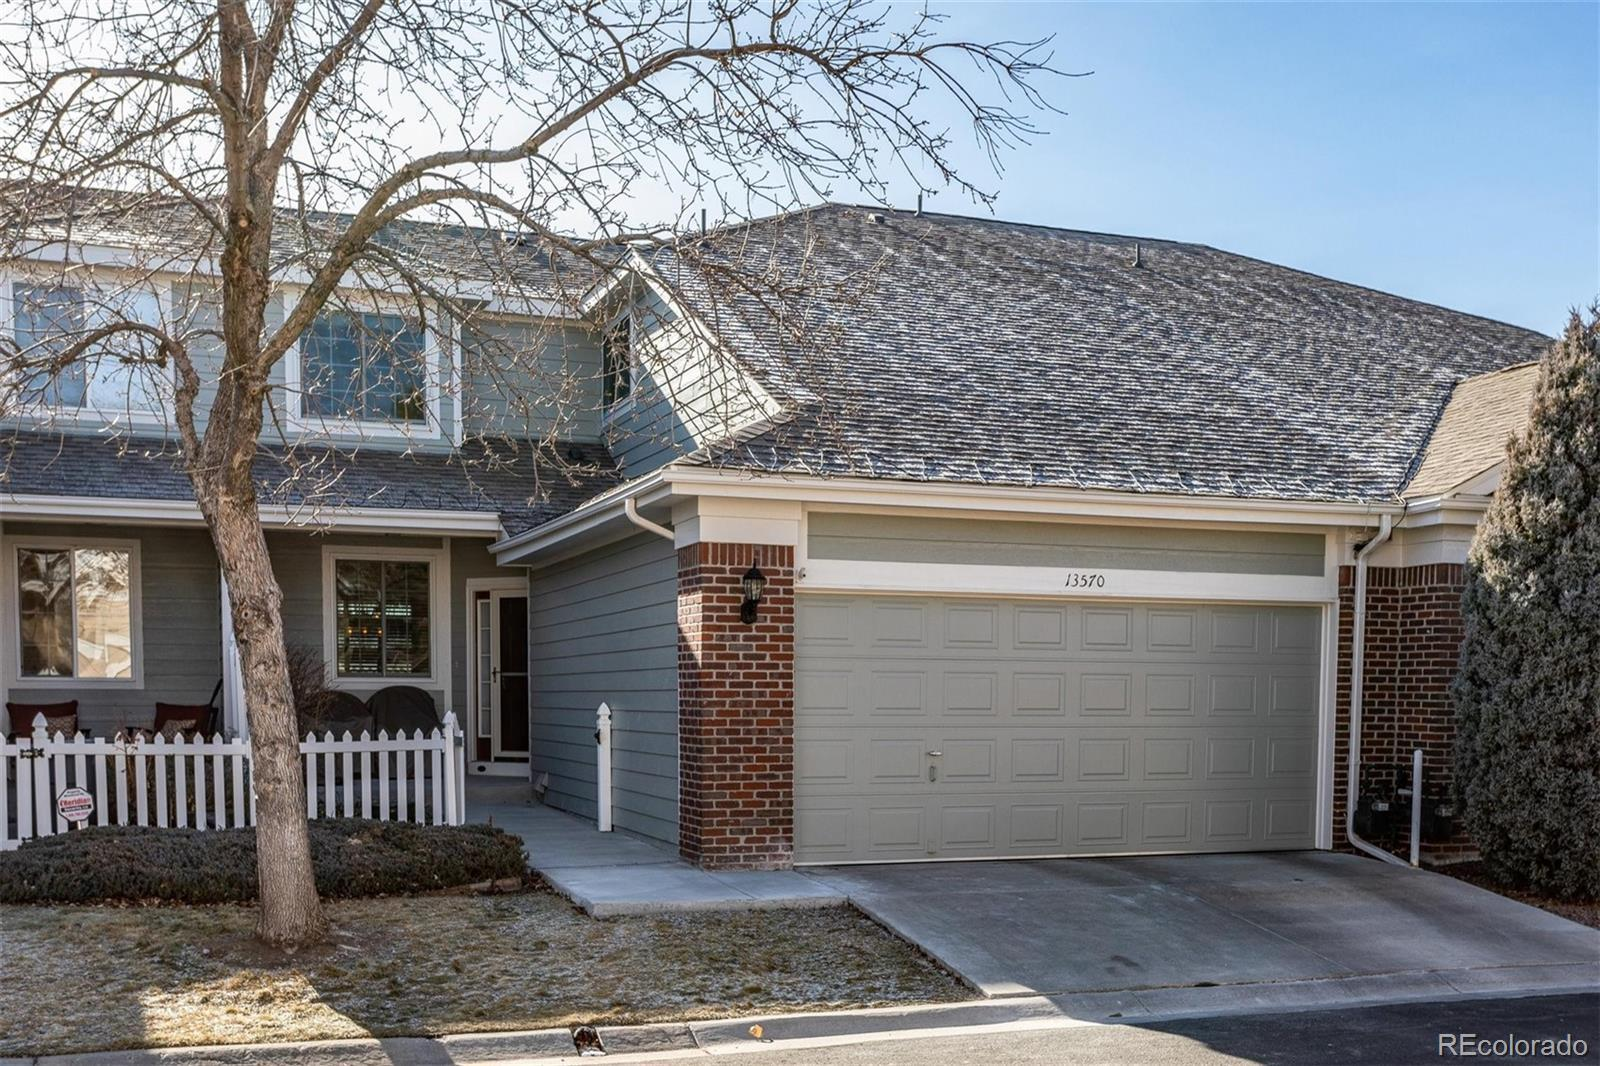 13570 W 61st Lane, Arvada, CO 80004 - #: 1562396